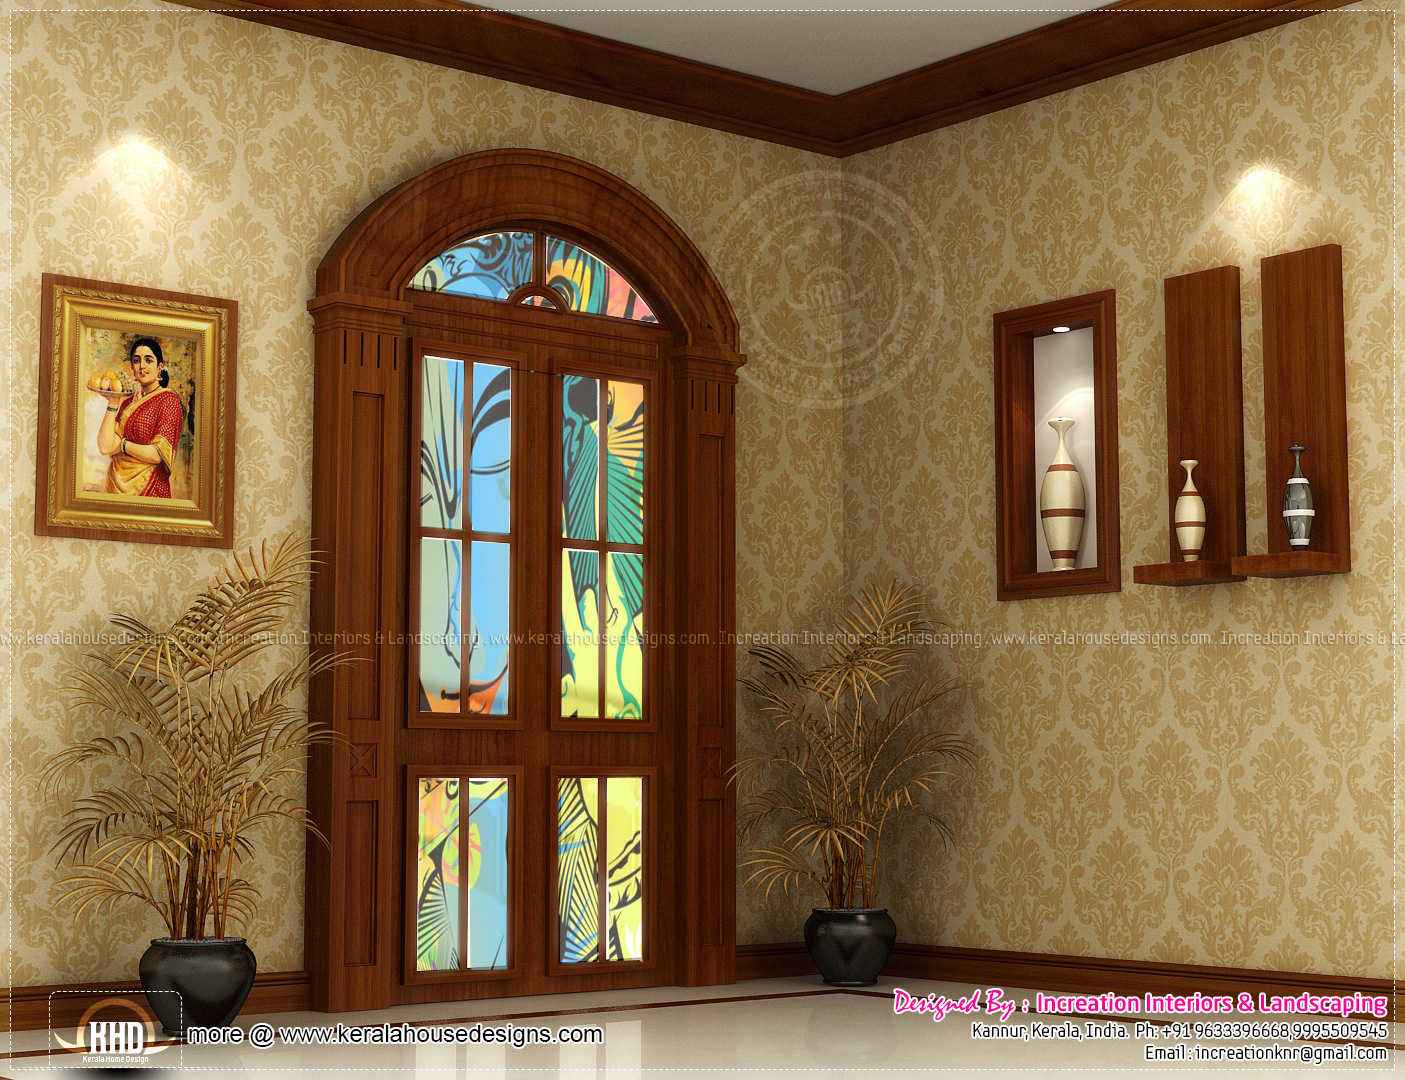 Interior designs by increation kannur kerala kerala for Kerala house living room interior design